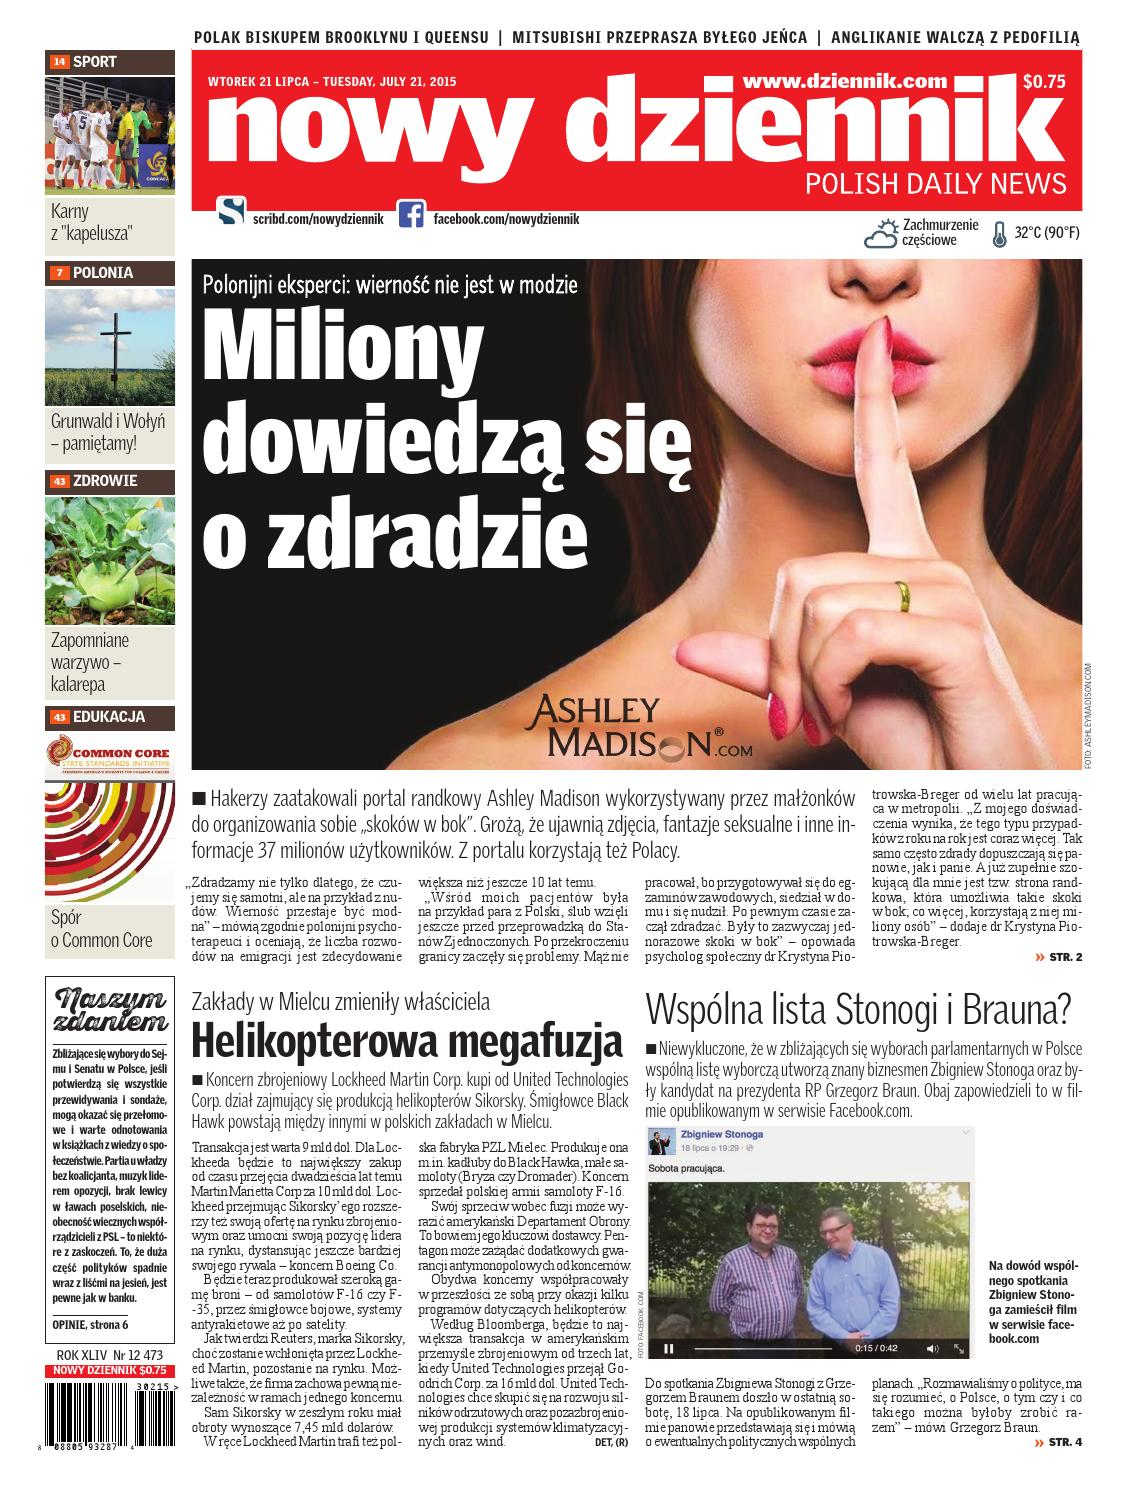 Bilet randkowy Ashley Madison